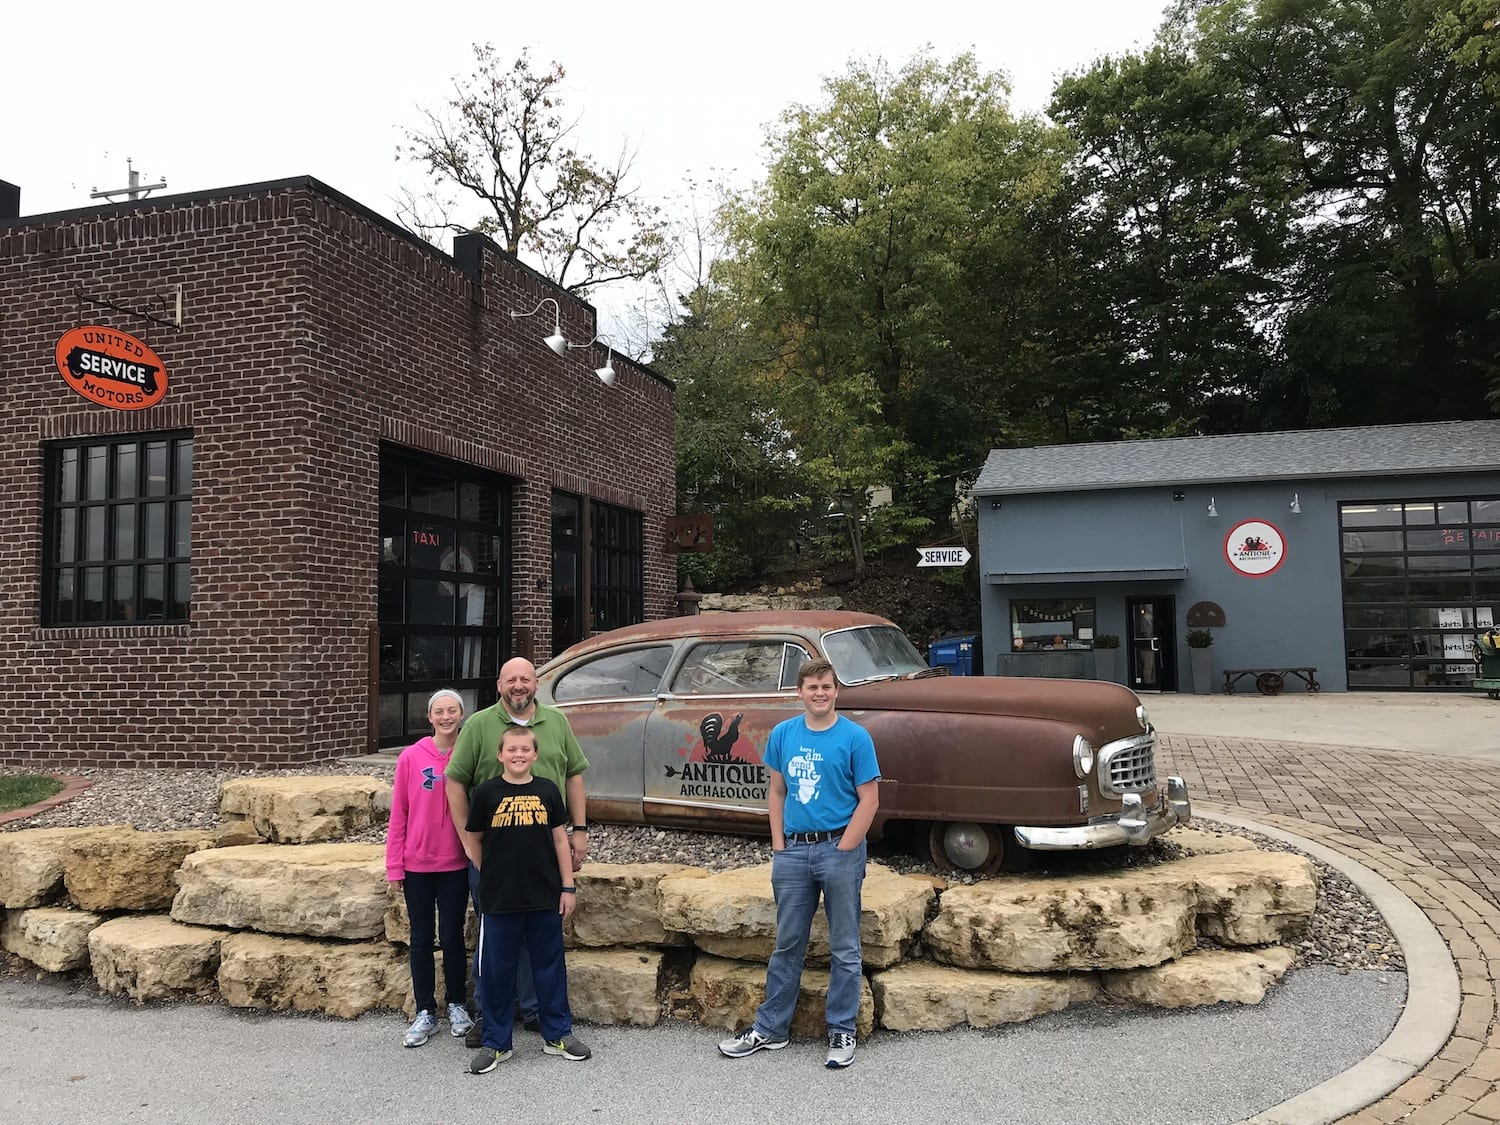 Antique Archaeology Home of American Pickers' Mike Wolfe - Nash